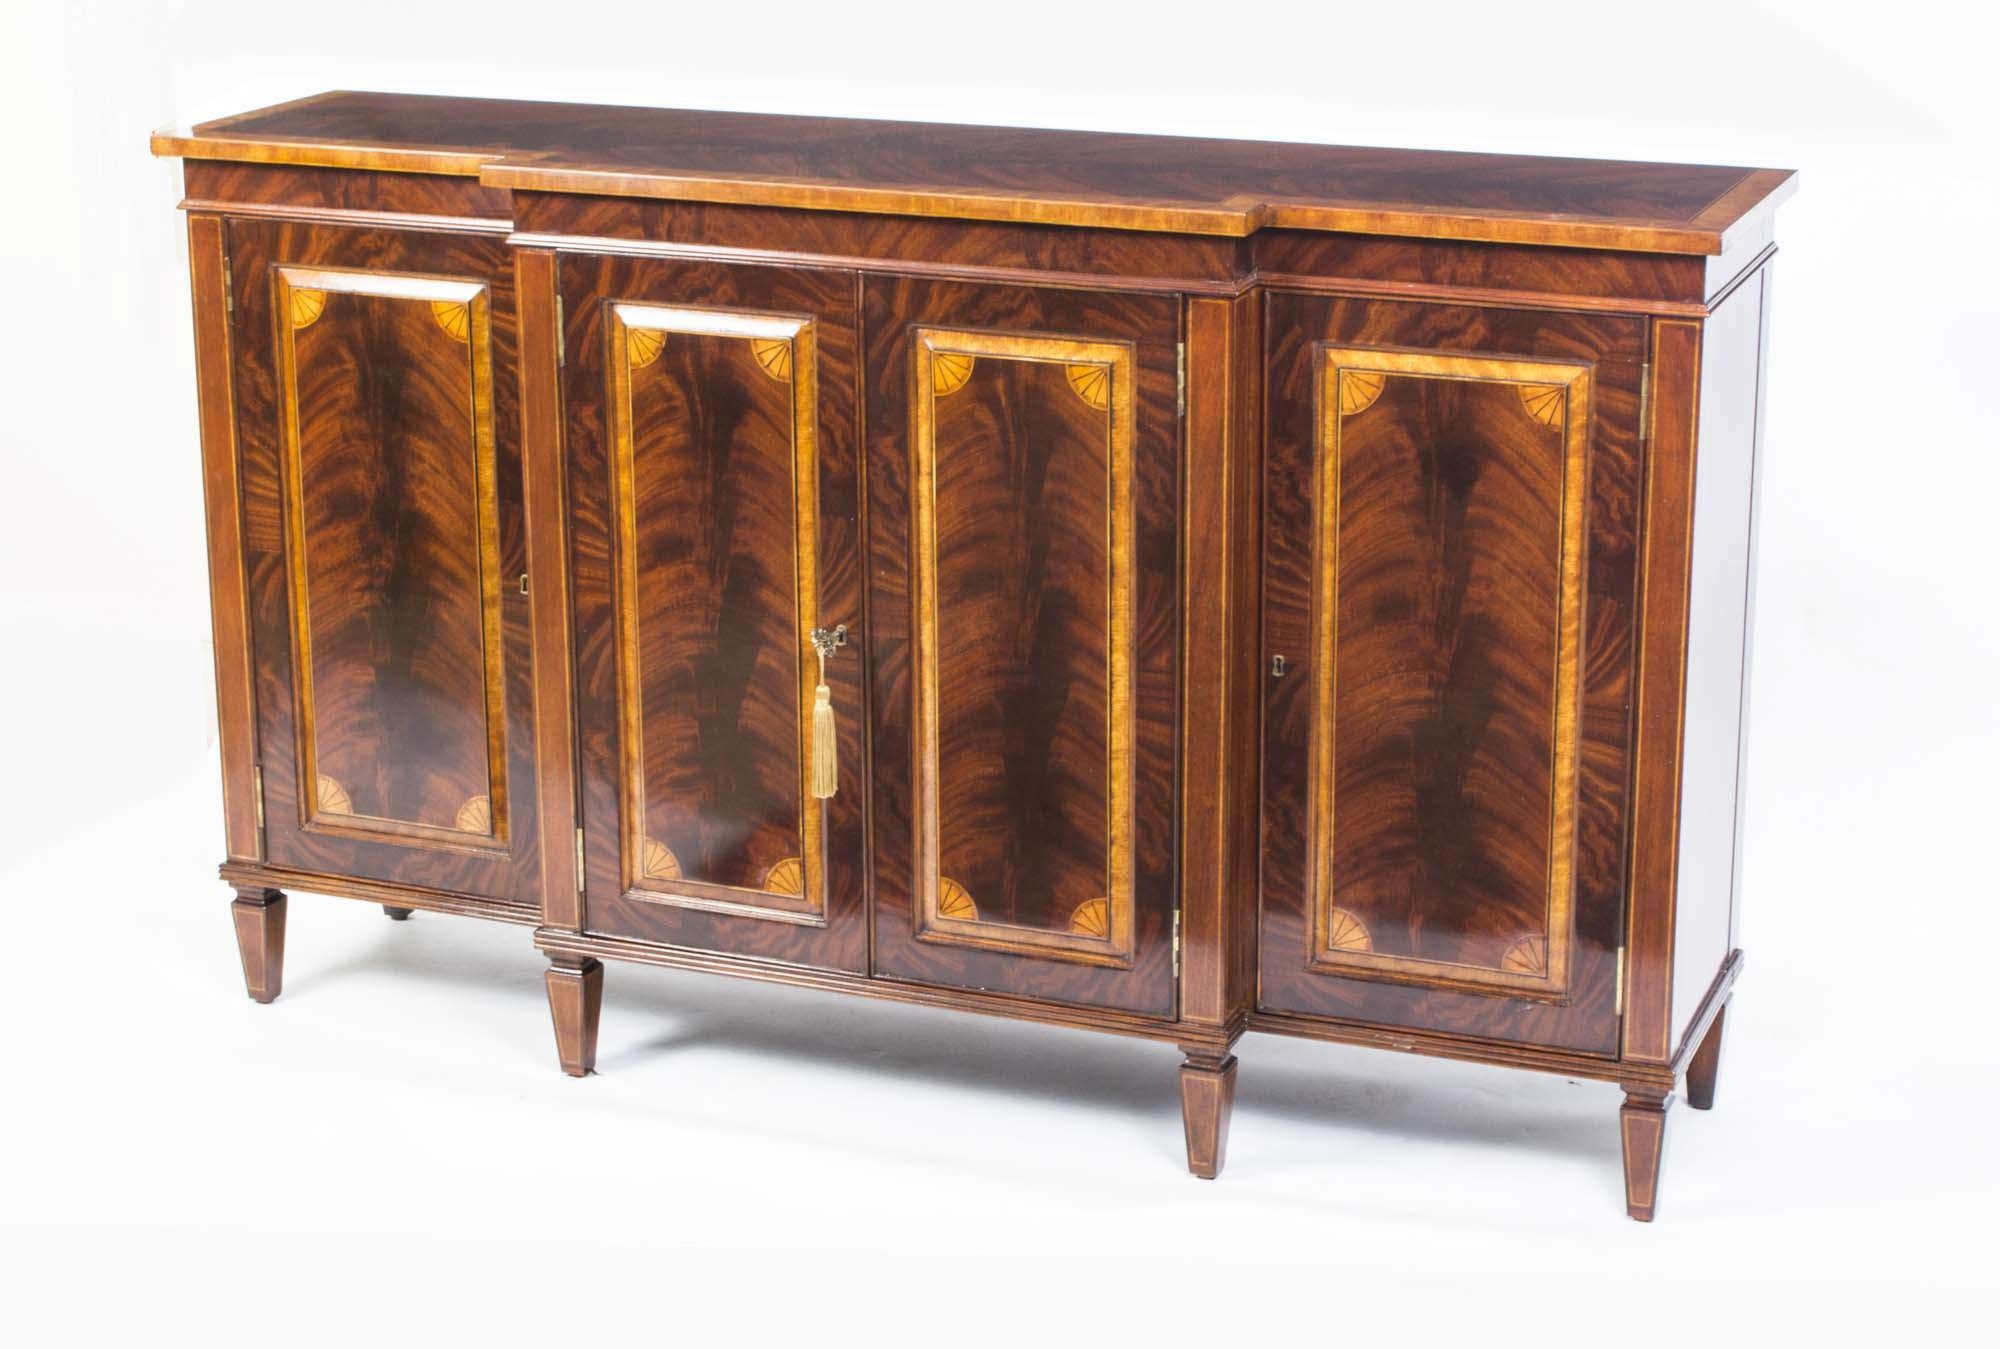 New Credenzas And Sideboards – Bjdgjy Regarding Credenzas And Sideboards (View 12 of 20)